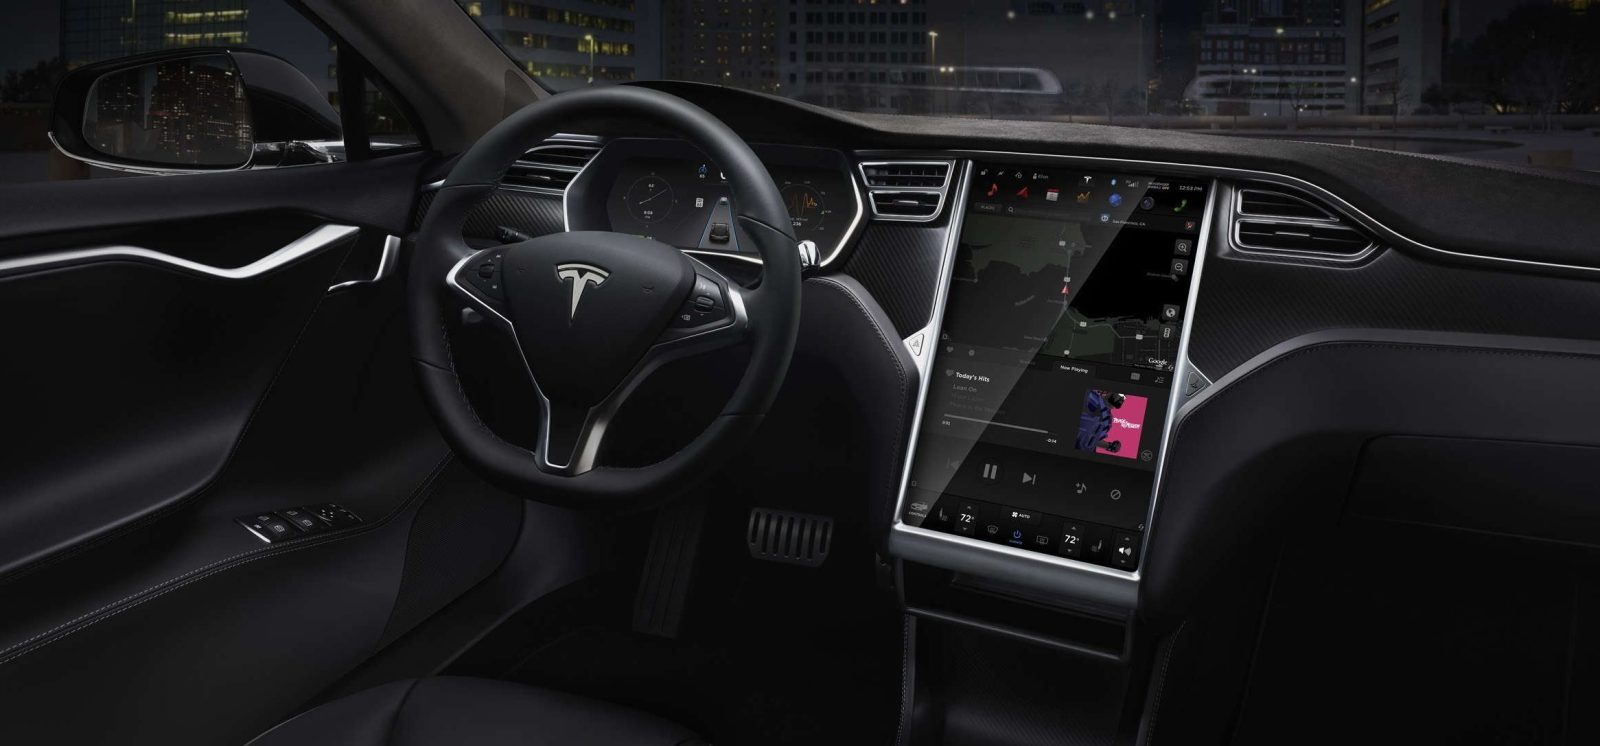 Tesla is updating its maps and navigation with open source mapping ...